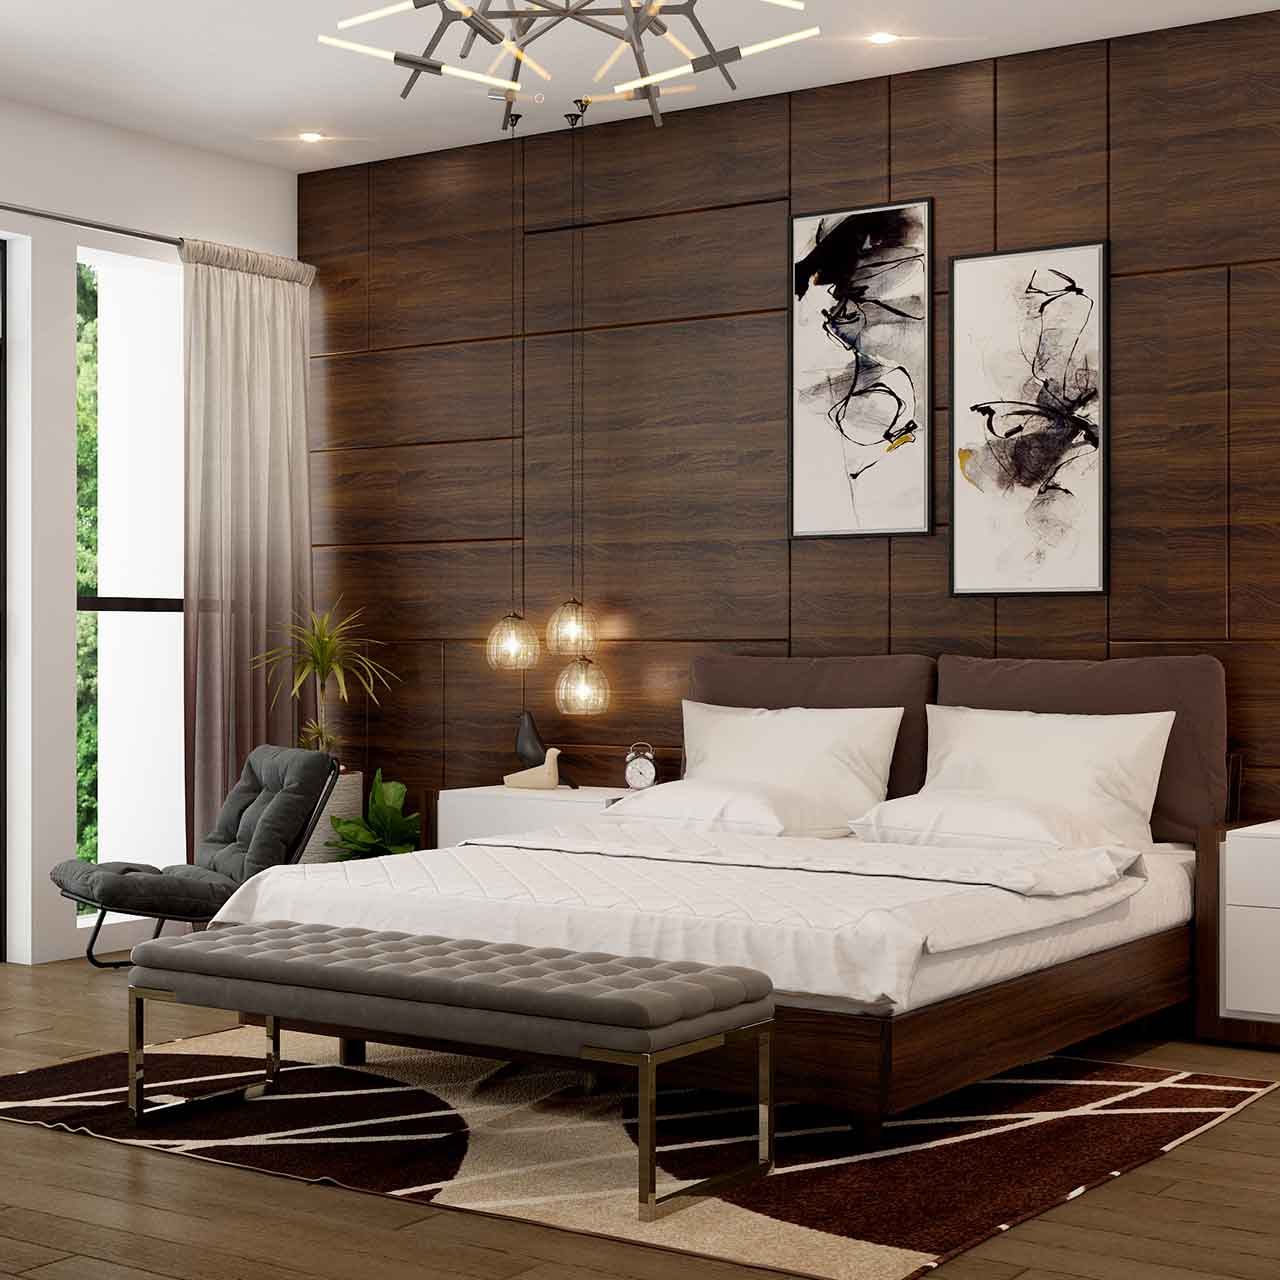 Traditional style bedroom interior designs are filled with positive vibes, pleasing atmosphere and clutter-free